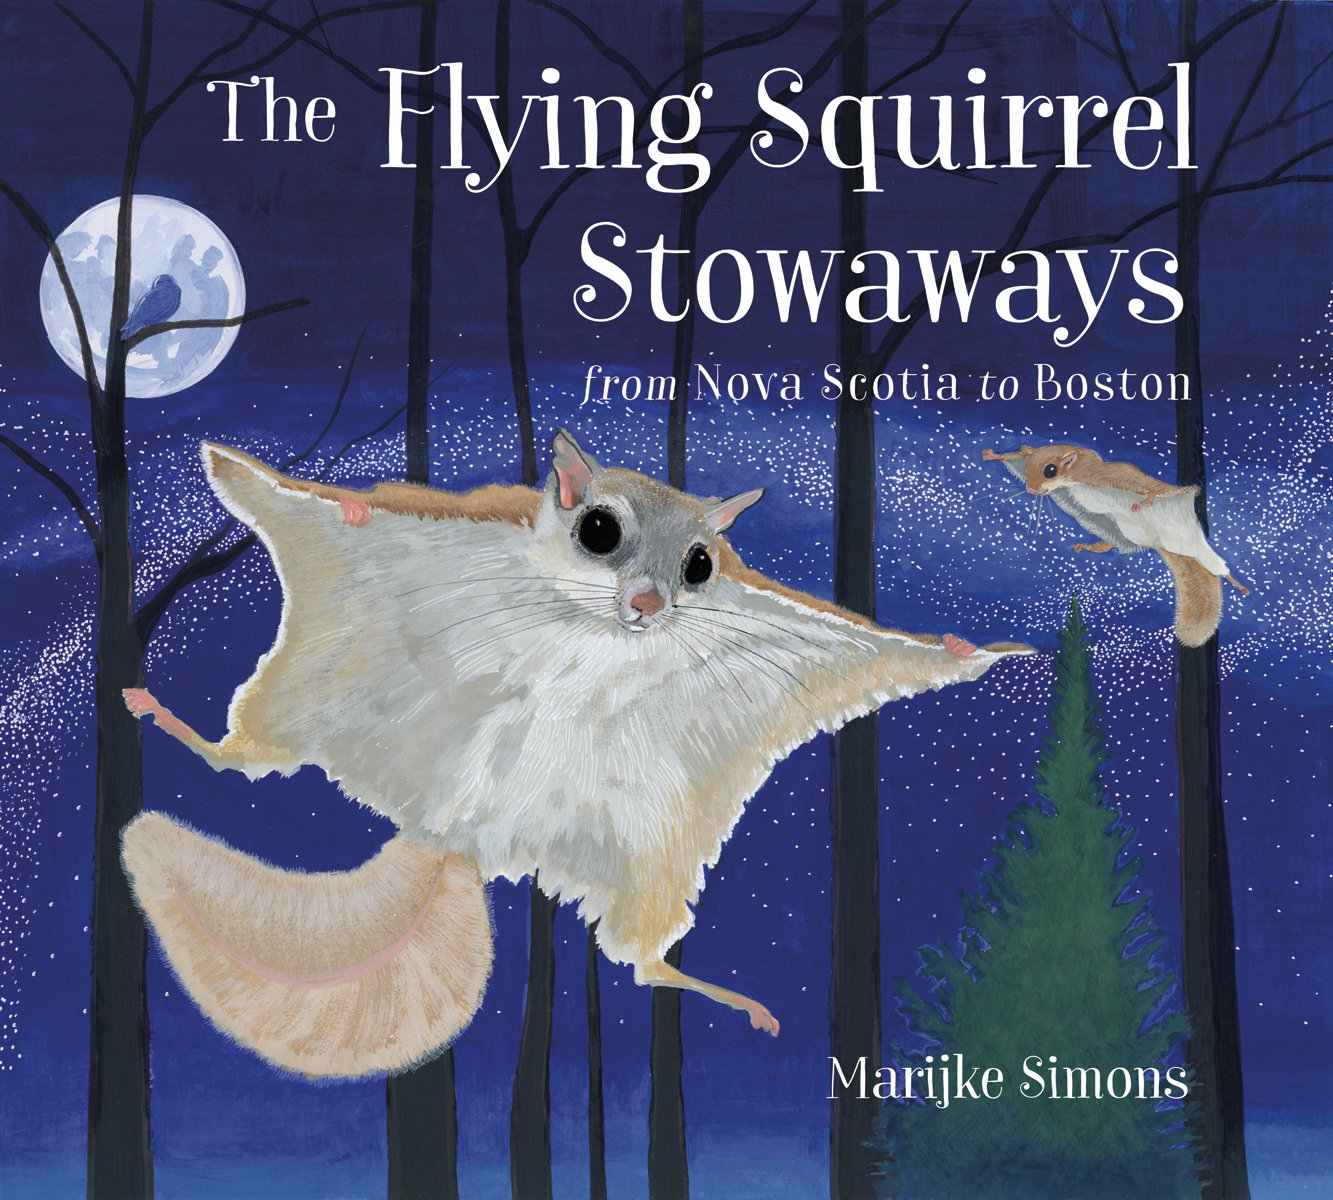 The Flying Squirrel Stowaways: from Nova Scotia to Boston